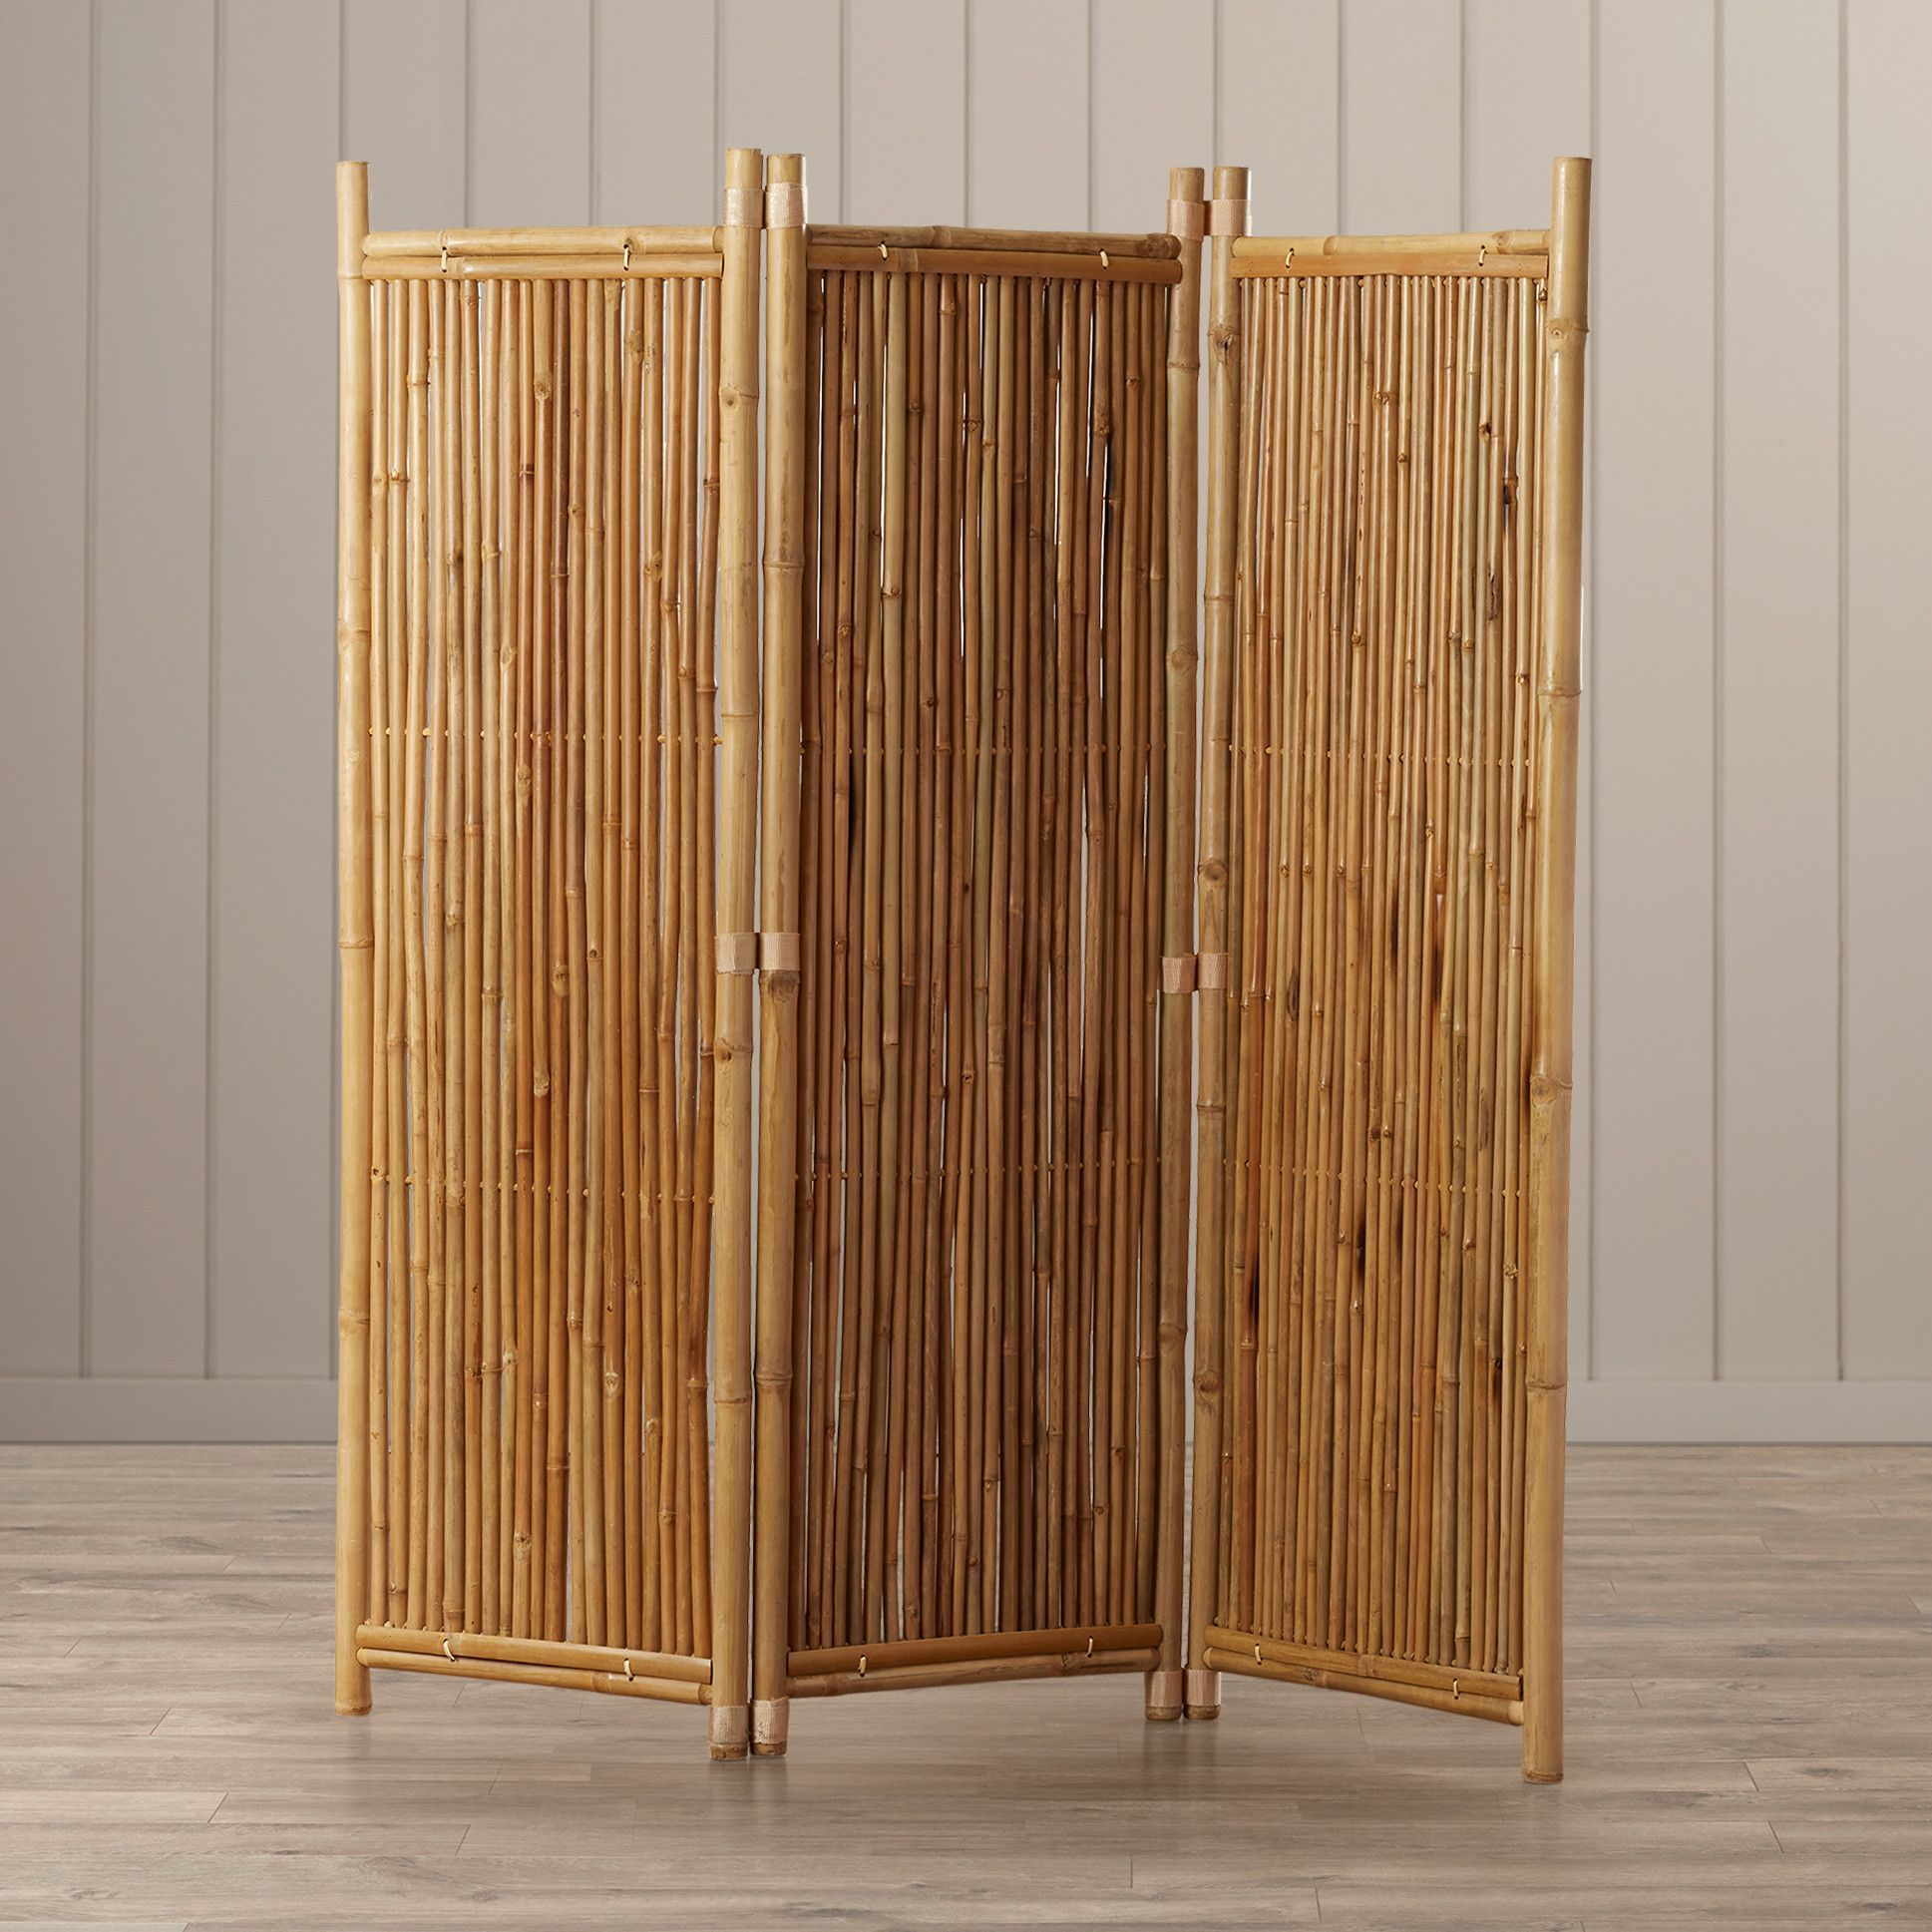 marvellous bamboo room dividers hanging bamboo room divider paltn